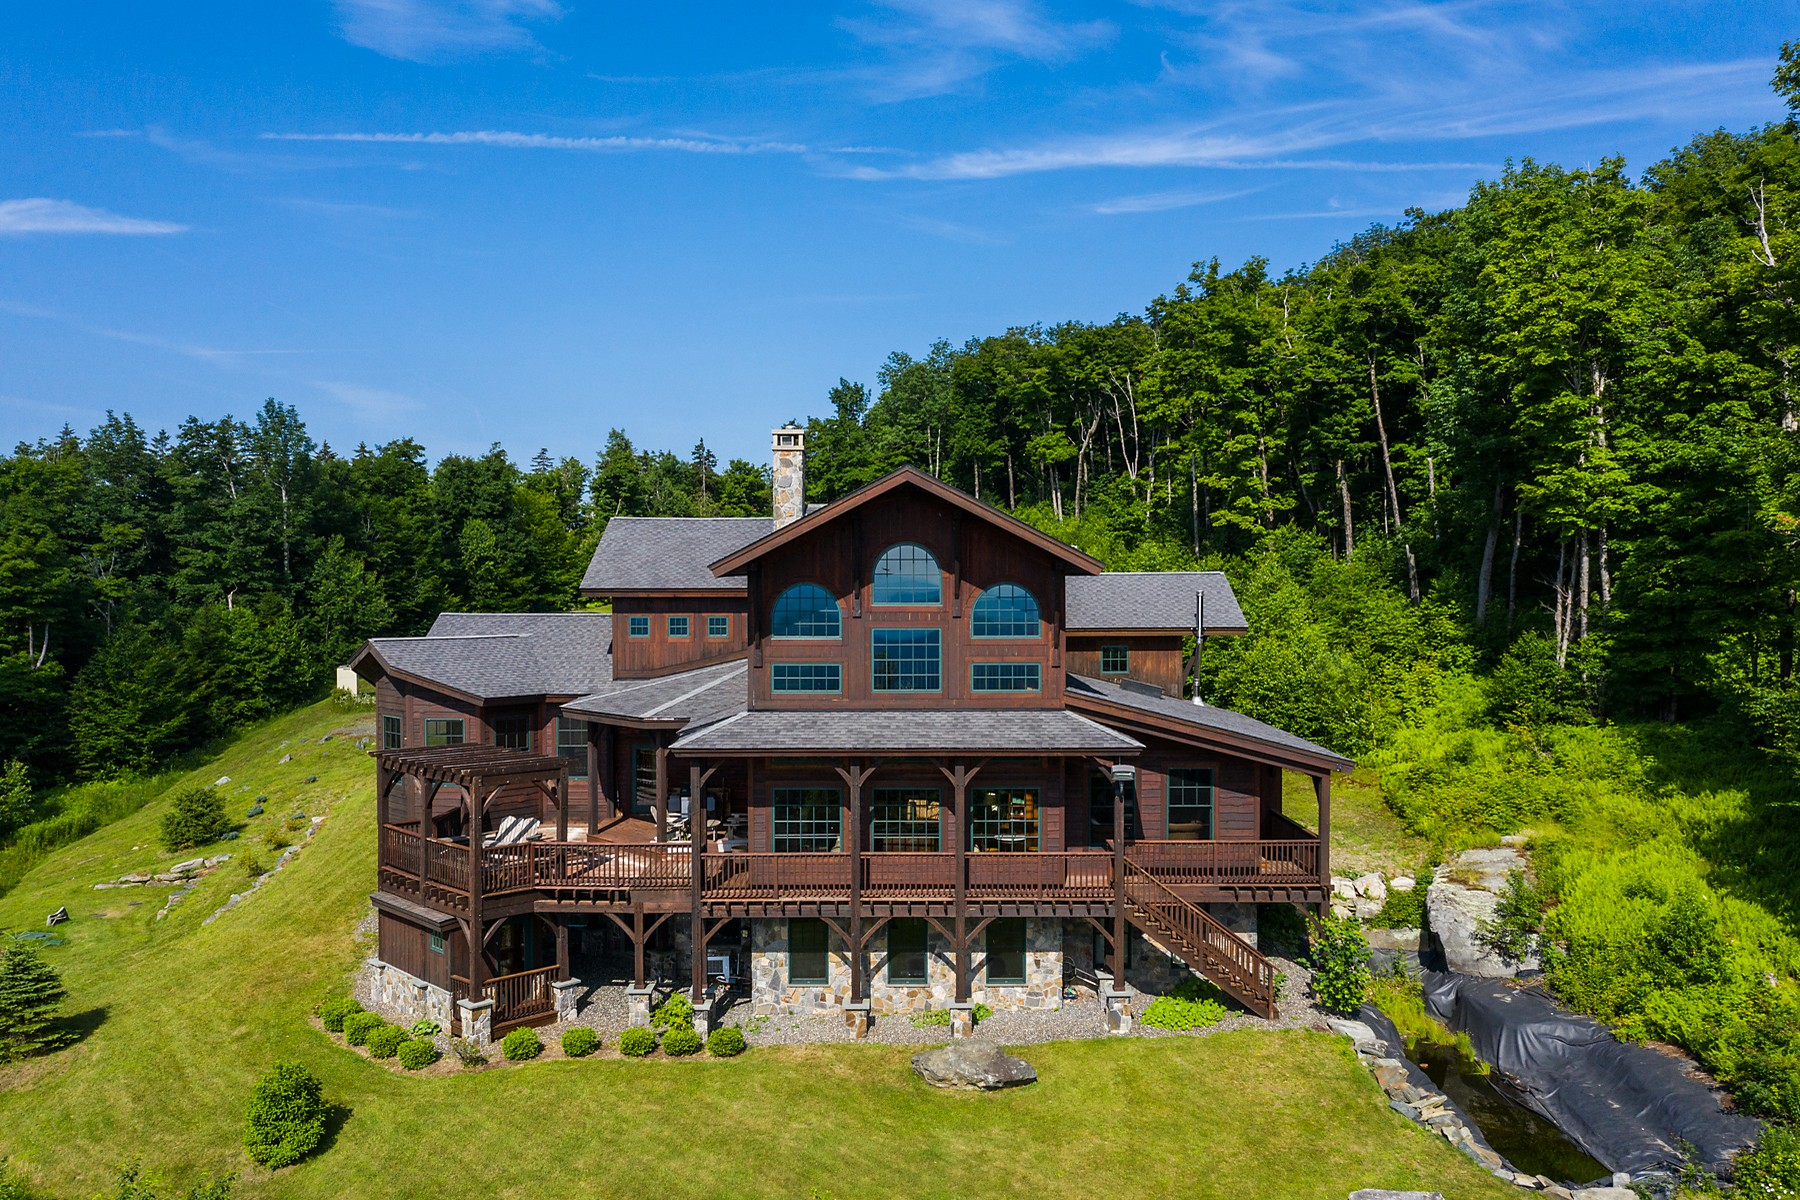 Single Family Homes for Sale at 28 Woodsman Rd Ext. Road, Dover 28 Woodsman Rd Dover, Vermont 05355 United States